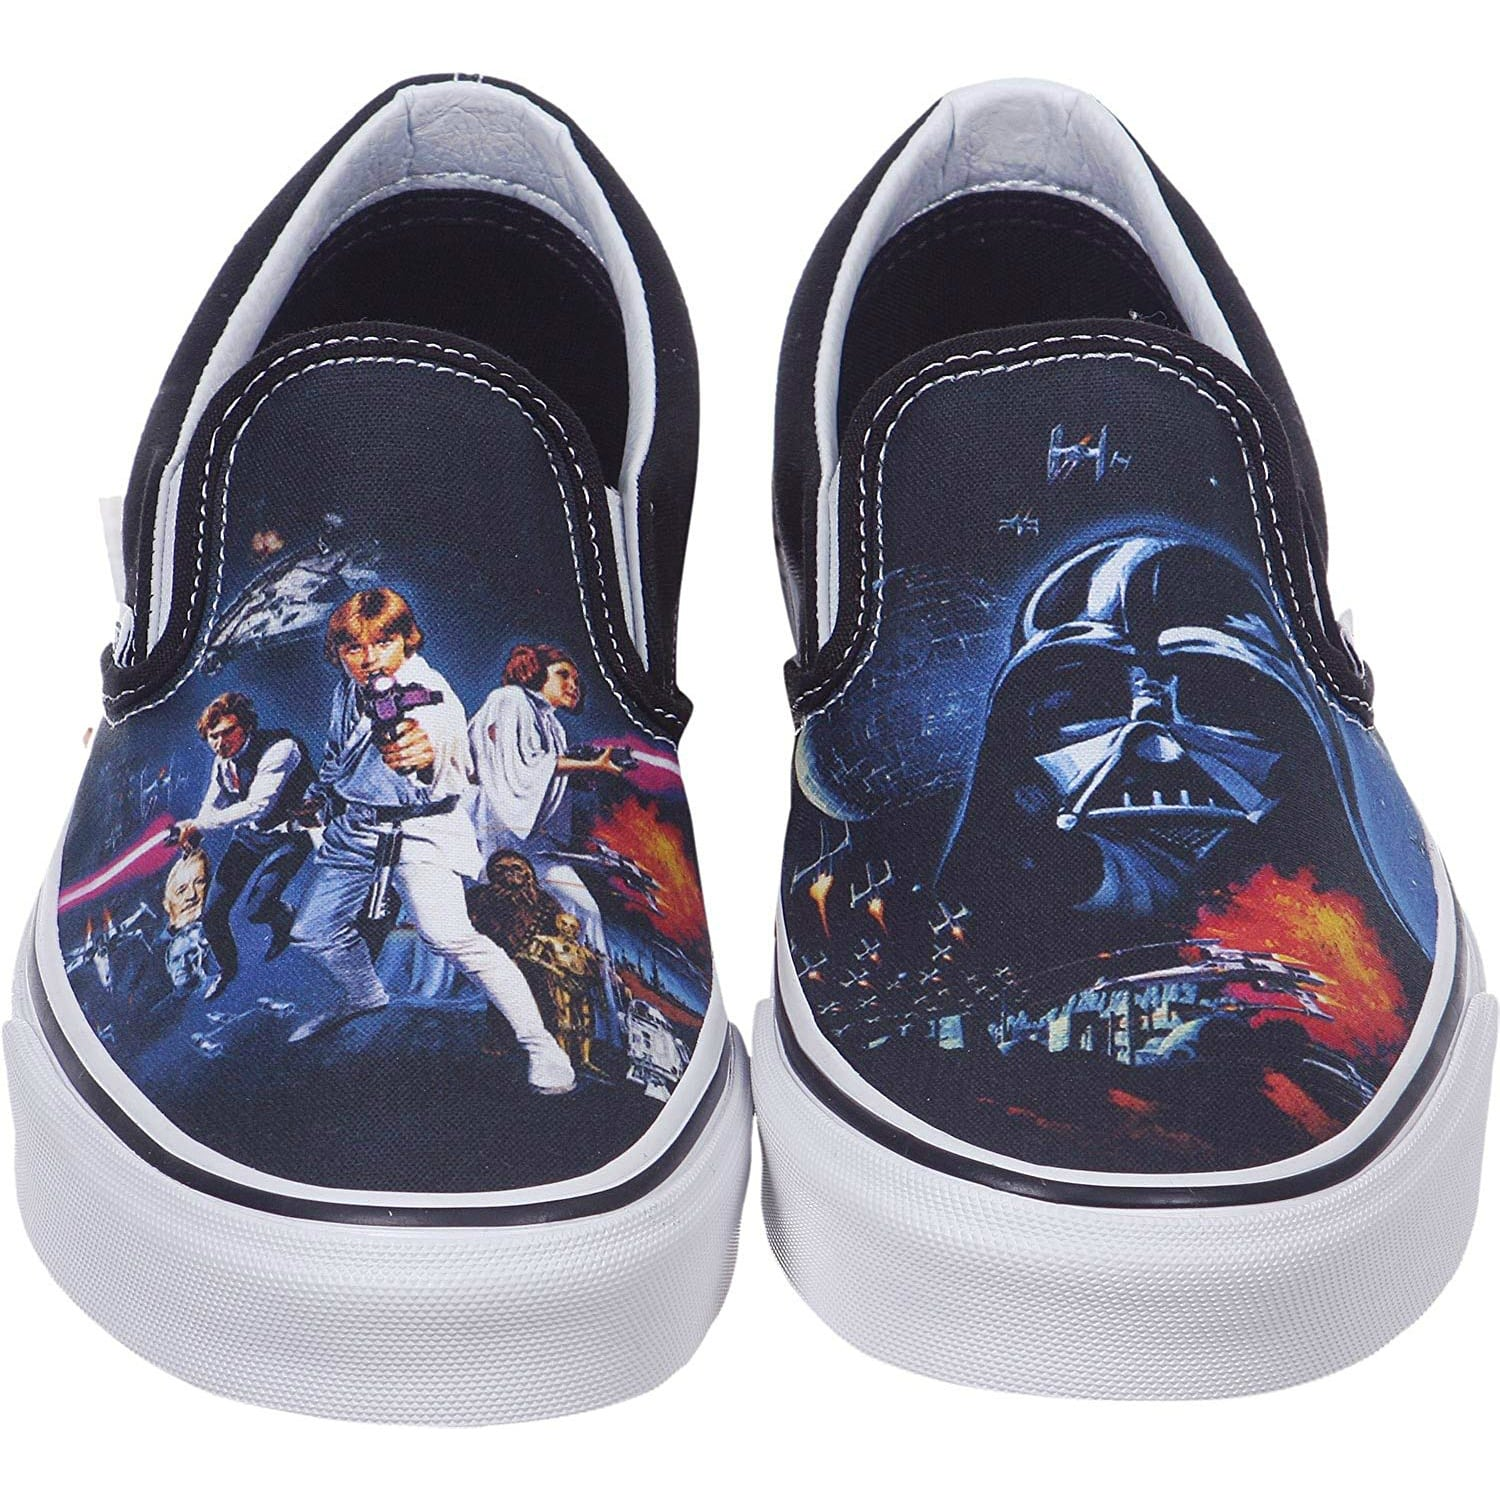 Vans Slip-On Star Wars A New Hope Limited Edition